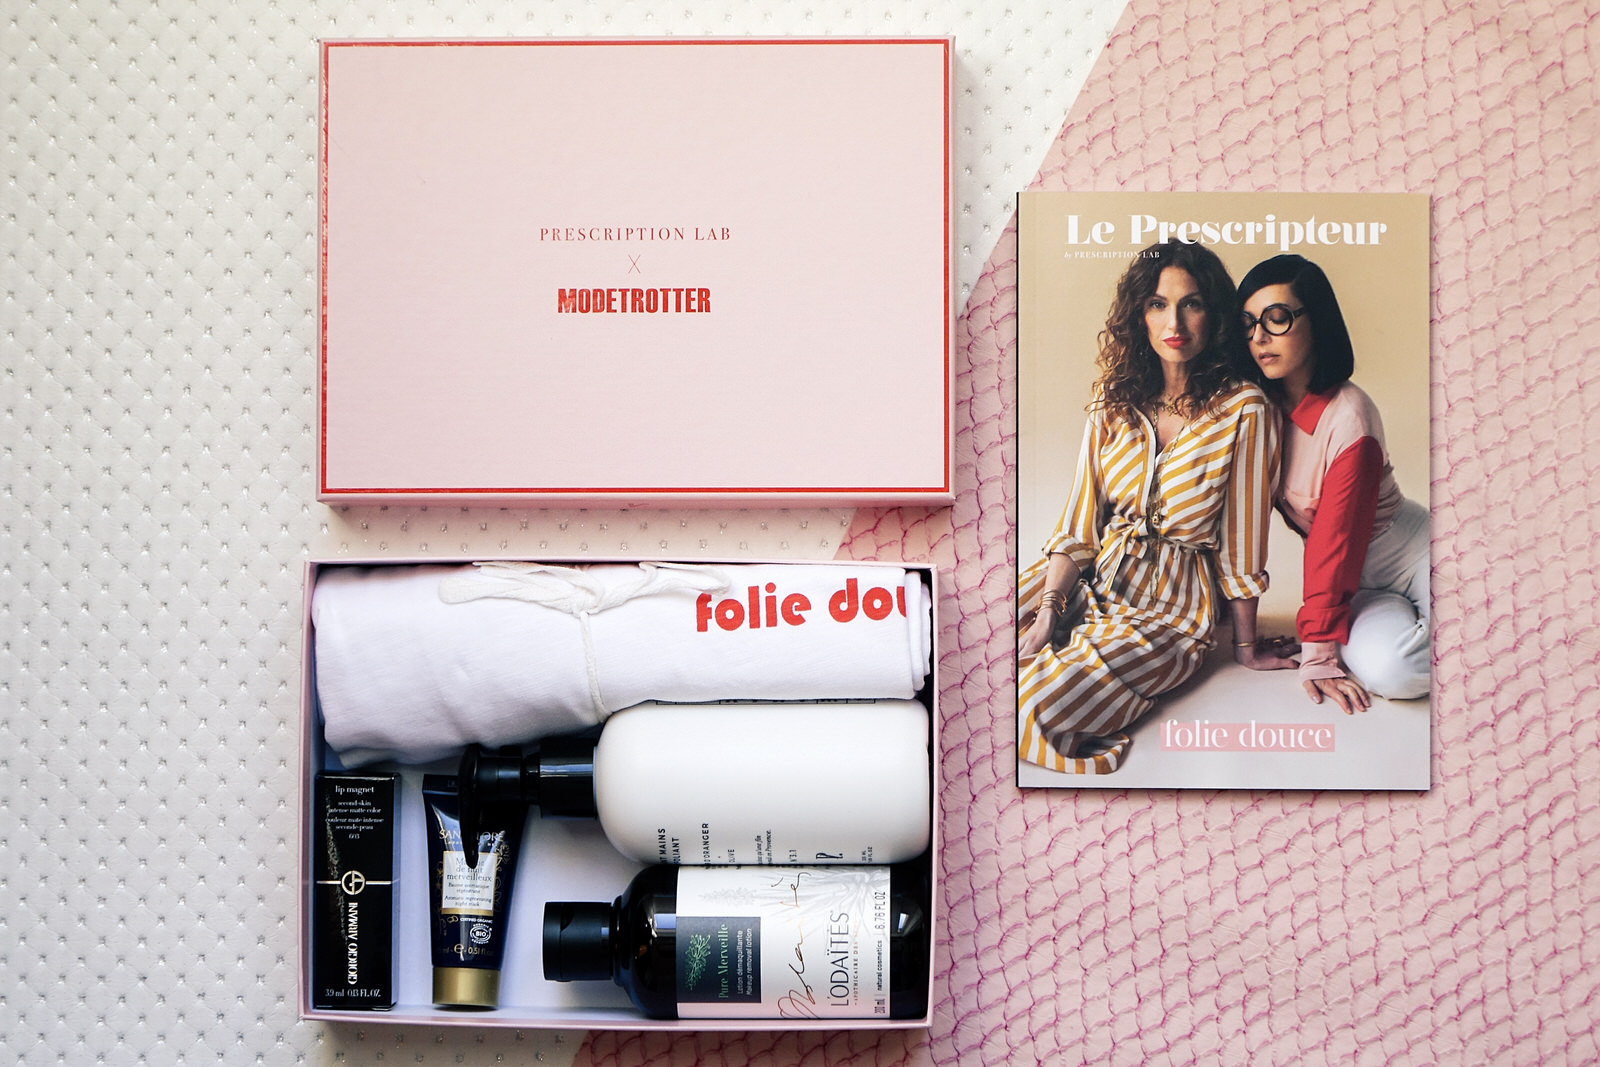 box beauté, prescription lab, box, avril 2019, giorgio armani, folie douce, le prescripteur, brigitte, contenu